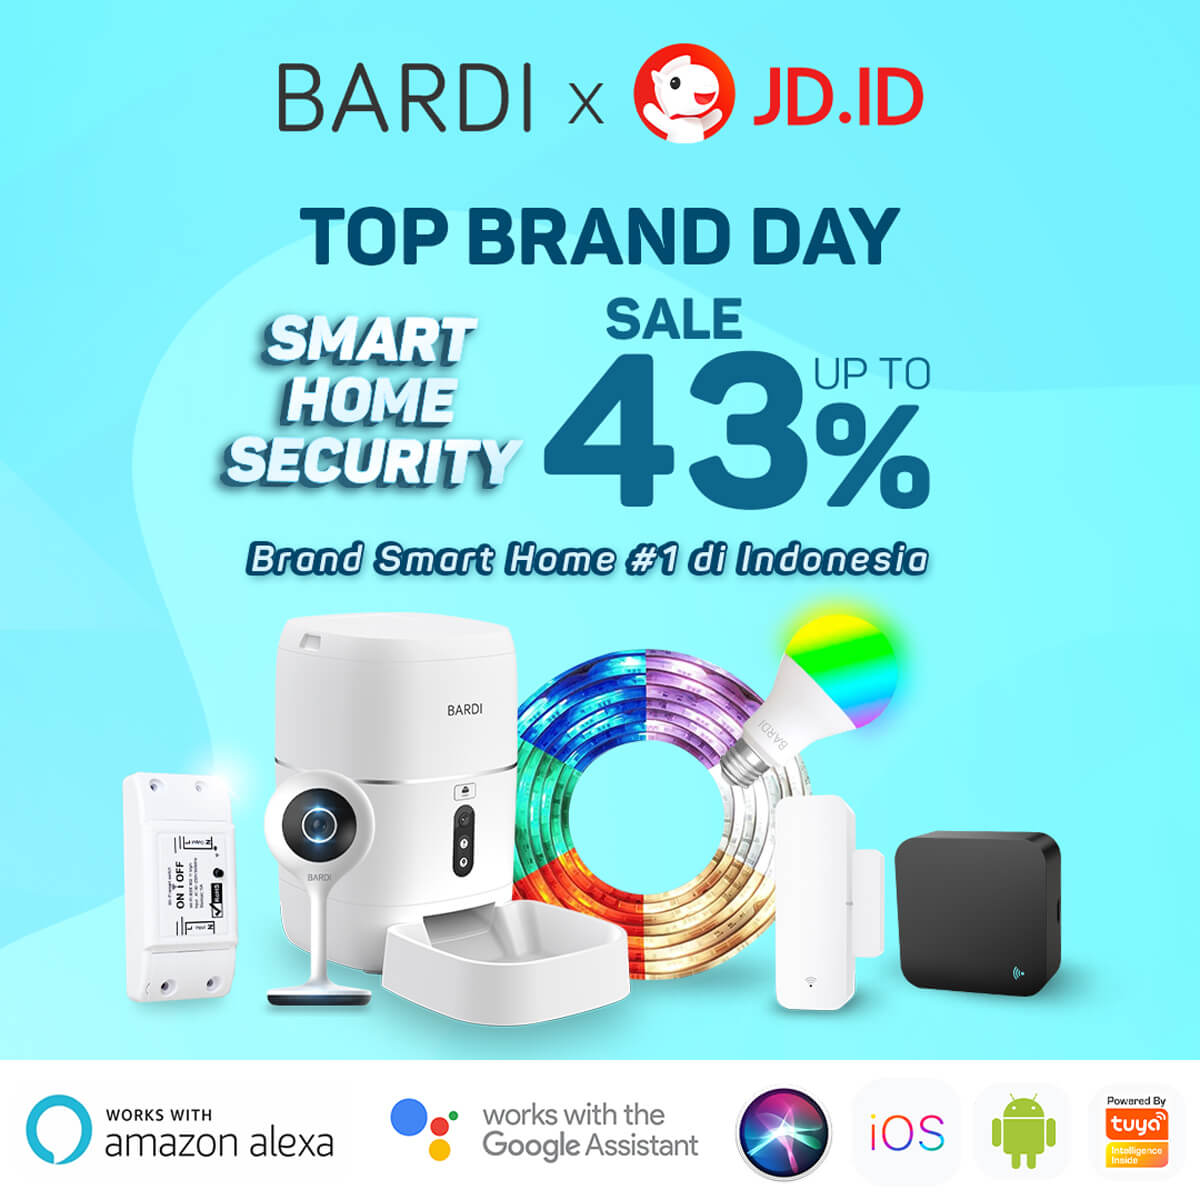 Bardi-JDID-Top-Brand-Day_Ads-1200x1200 (1)